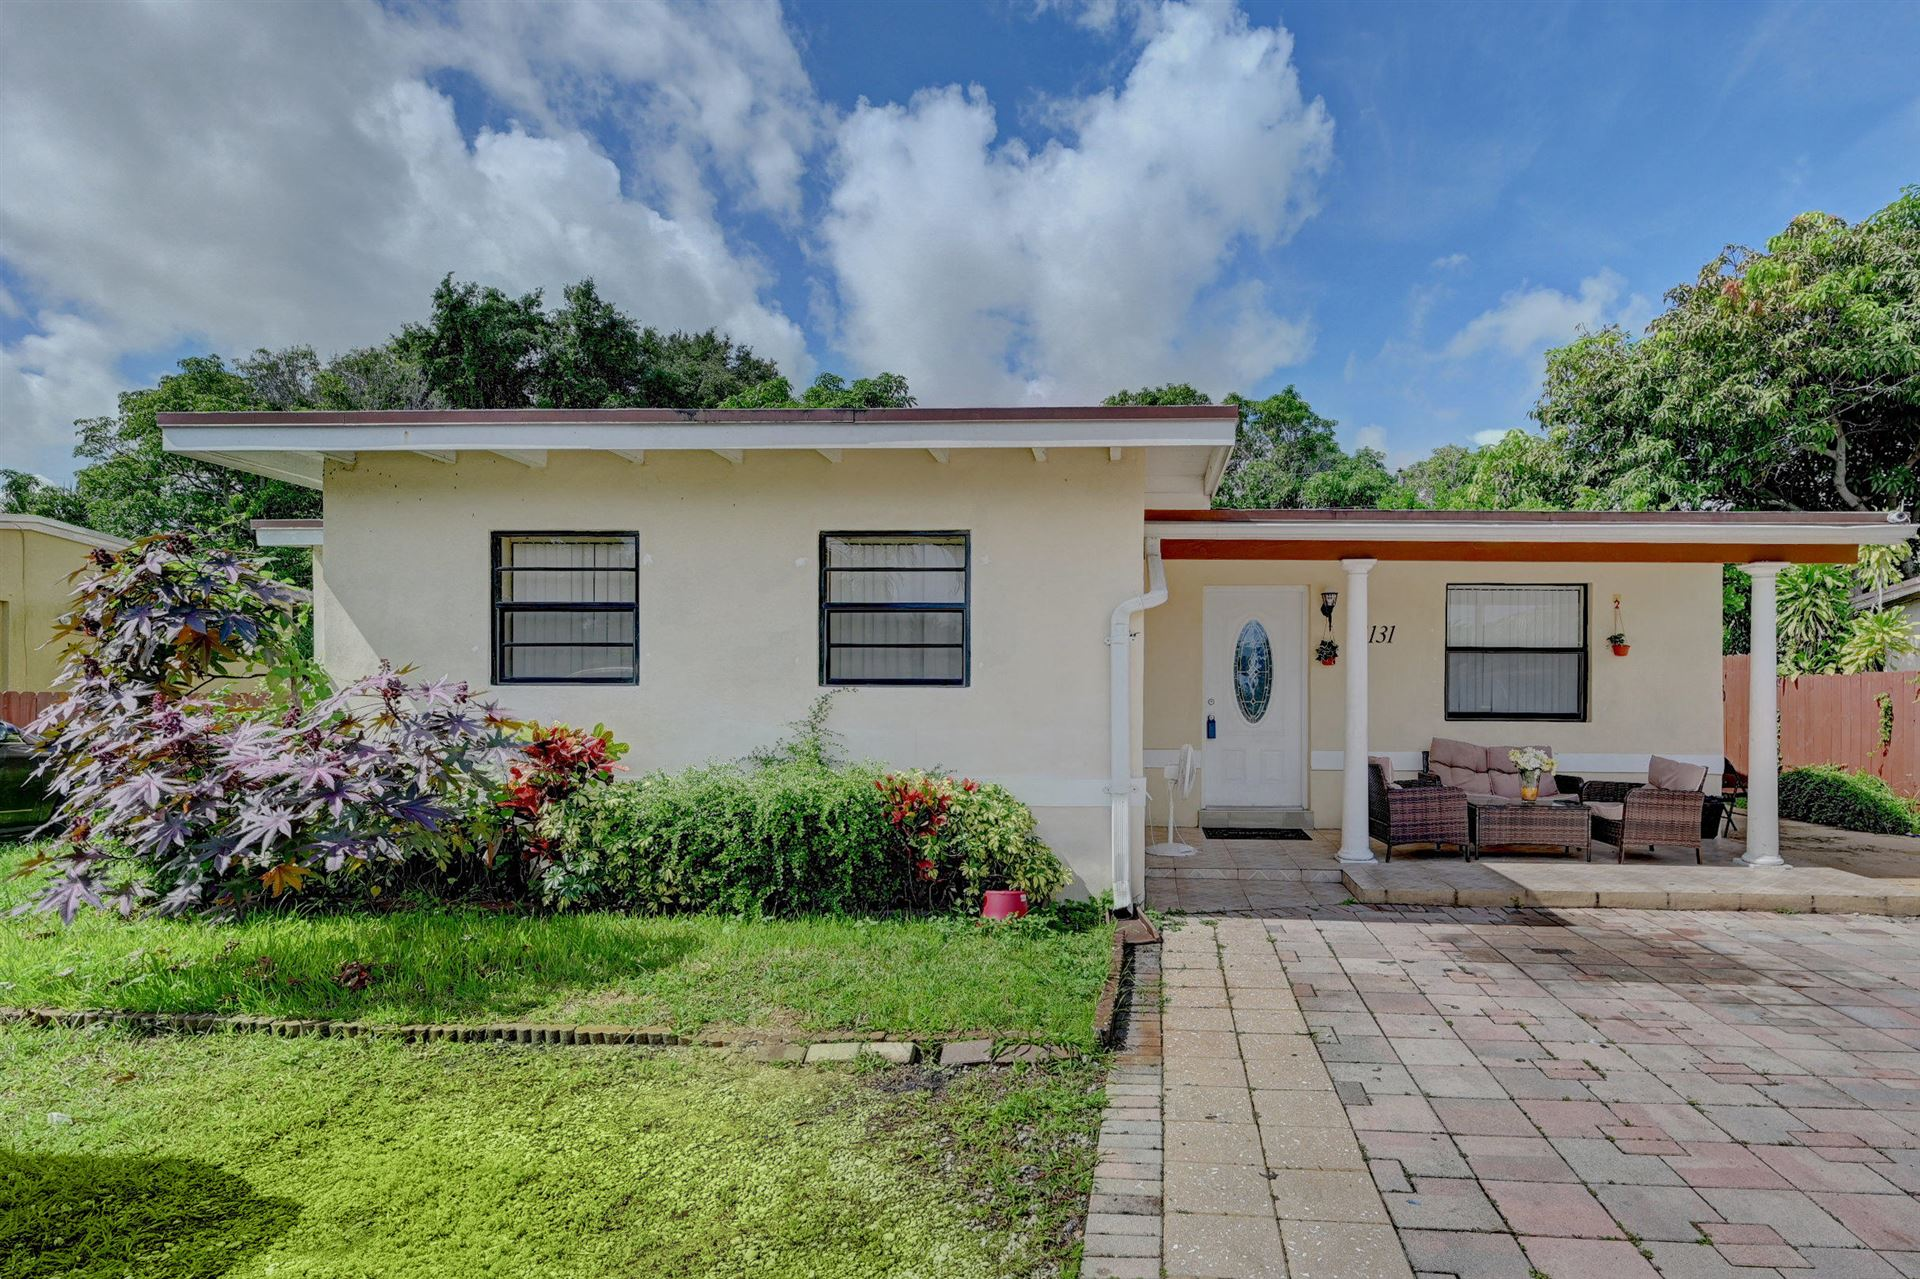 1131 NW 17th Avenue, Fort Lauderdale, FL 33311 - #: RX-10664492